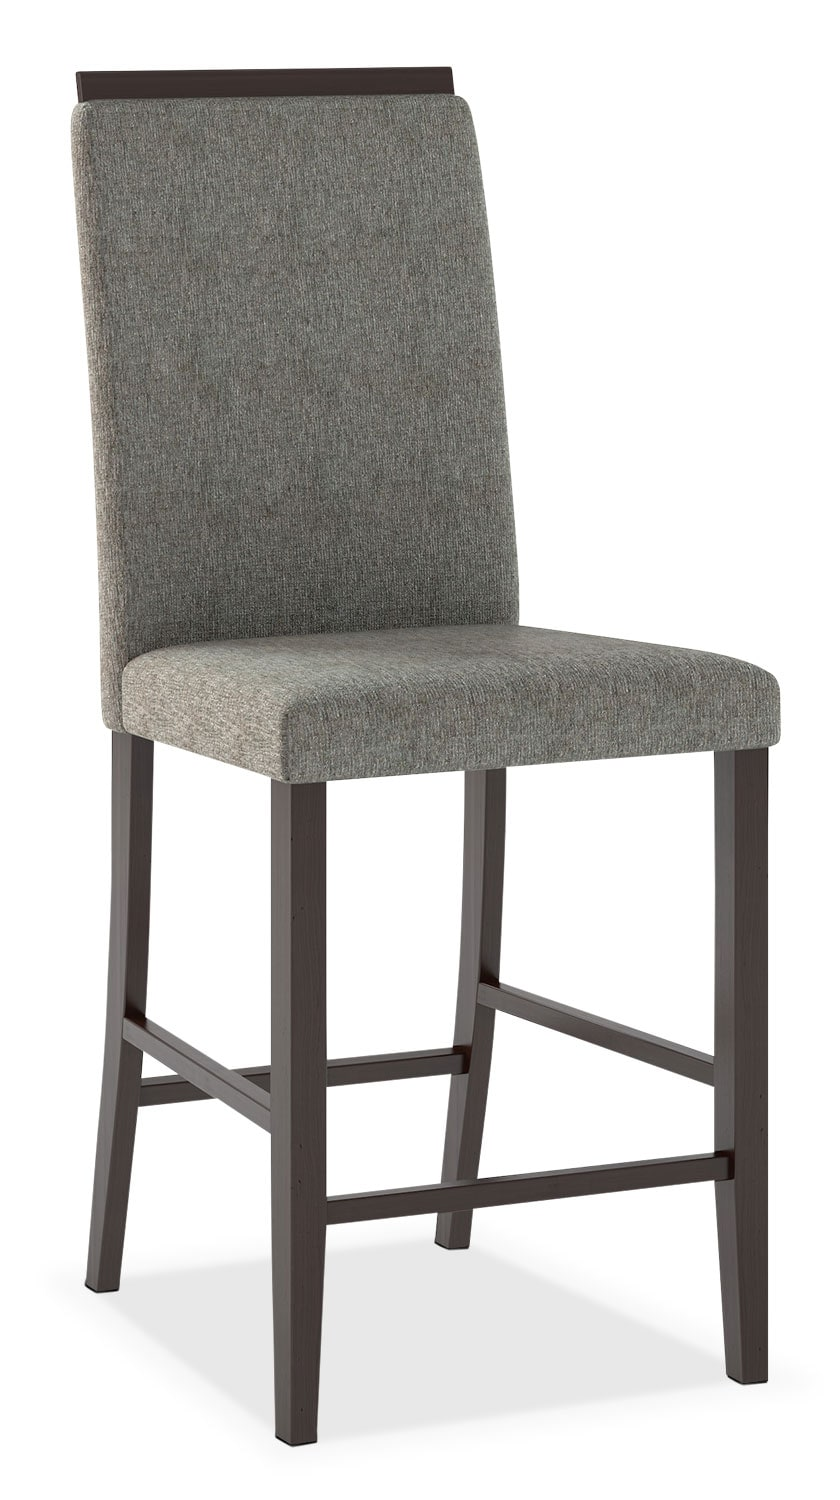 Bistro Counter-Height Dining Chair with Capped Backrest – Pewter Grey